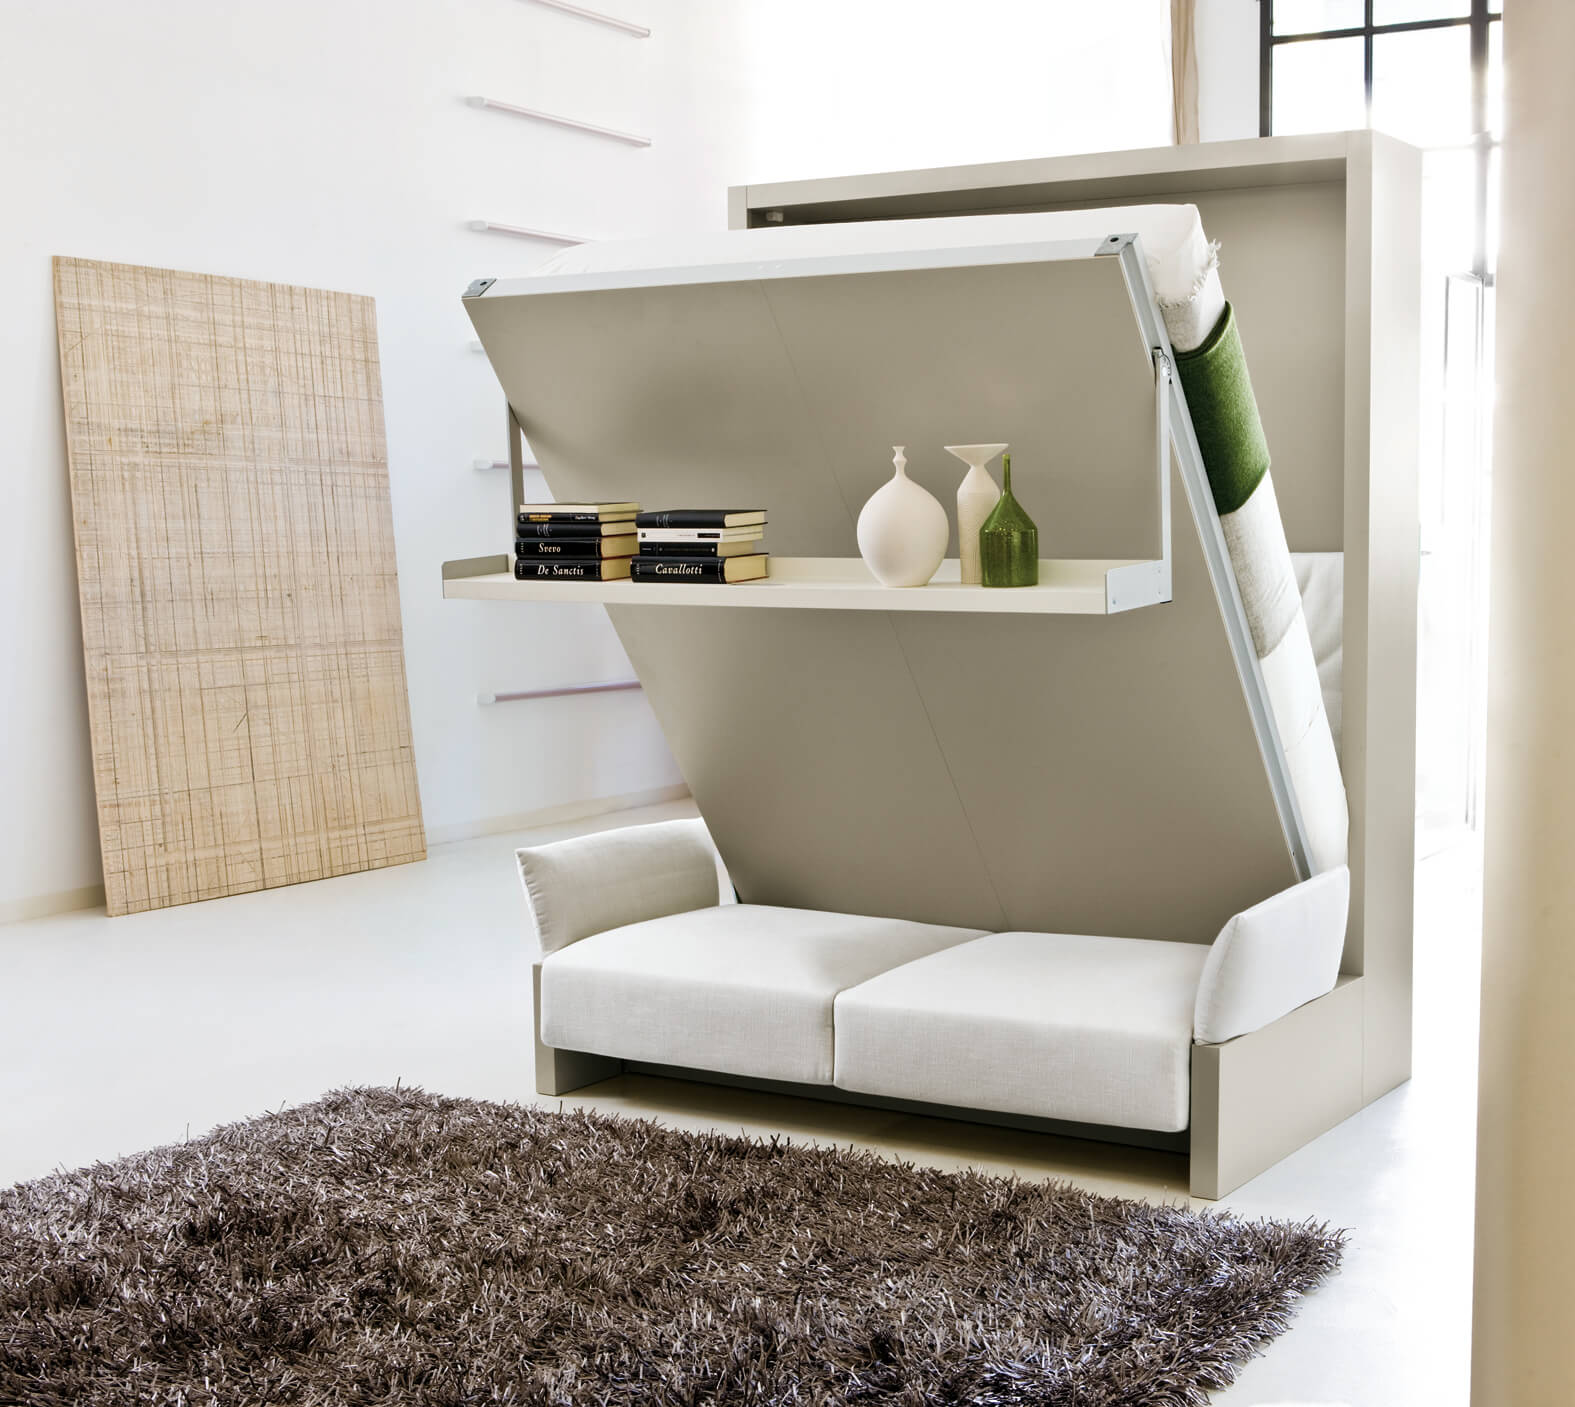 Wall beds for tiny home living interior design design news and wall beds 1 amipublicfo Choice Image